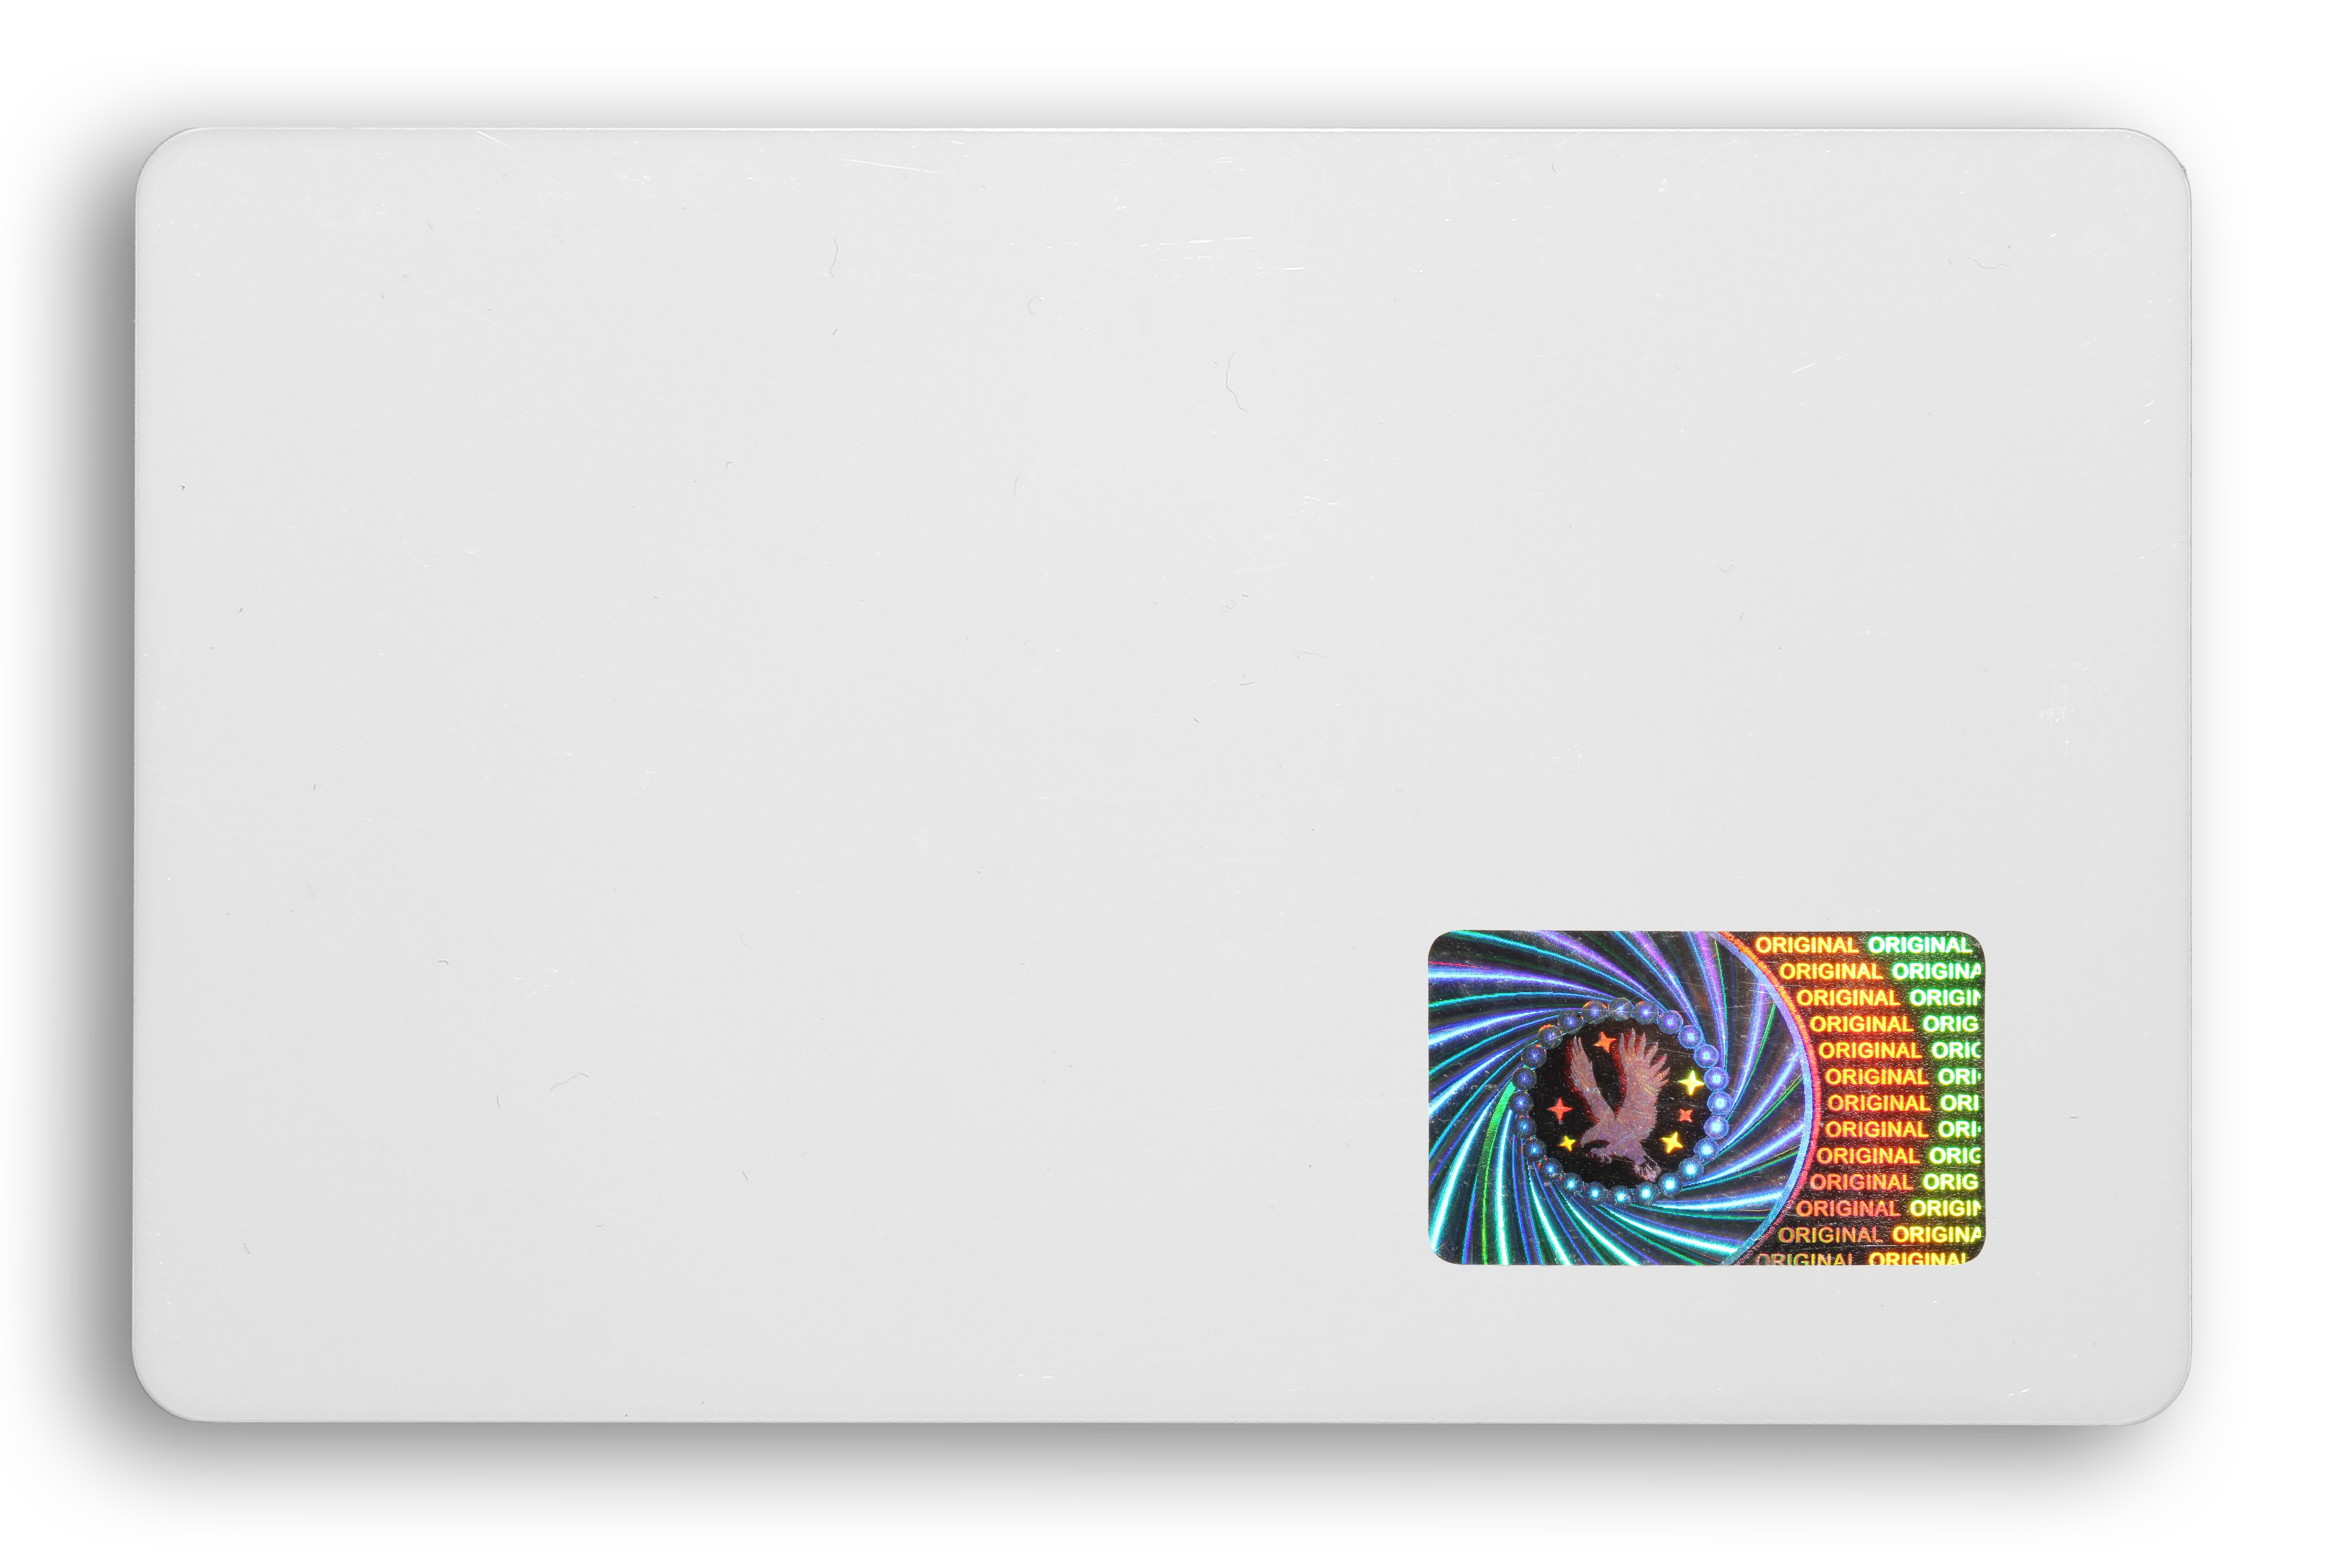 RFID-card-holographic-stamp- security